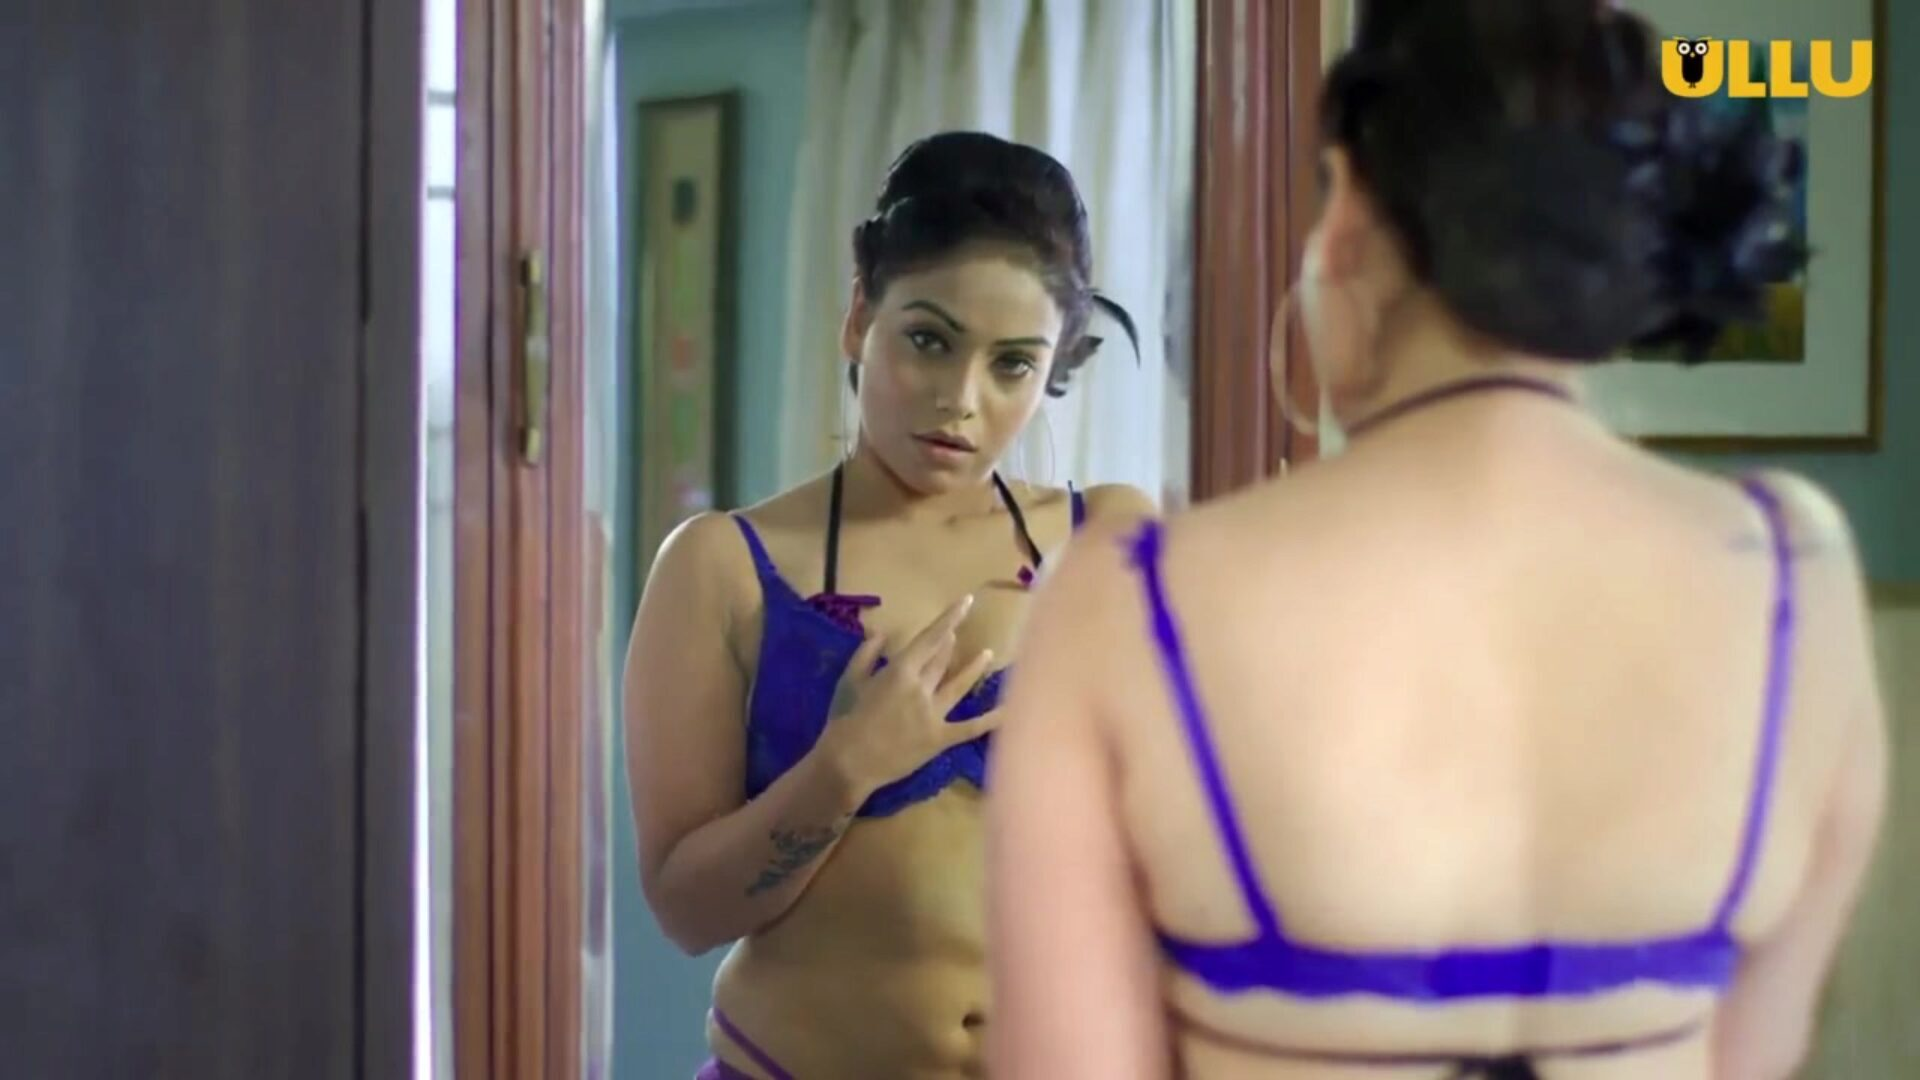 Indian Actress Naina Chhabra entice bang Indian Polilitician Naina Chhabra seduce politician with striping her sexy blue bra panty and ride on him firm to give orgasm drill large stiff milk shakes moaning hot expression hindi bollywood web series  Ullu